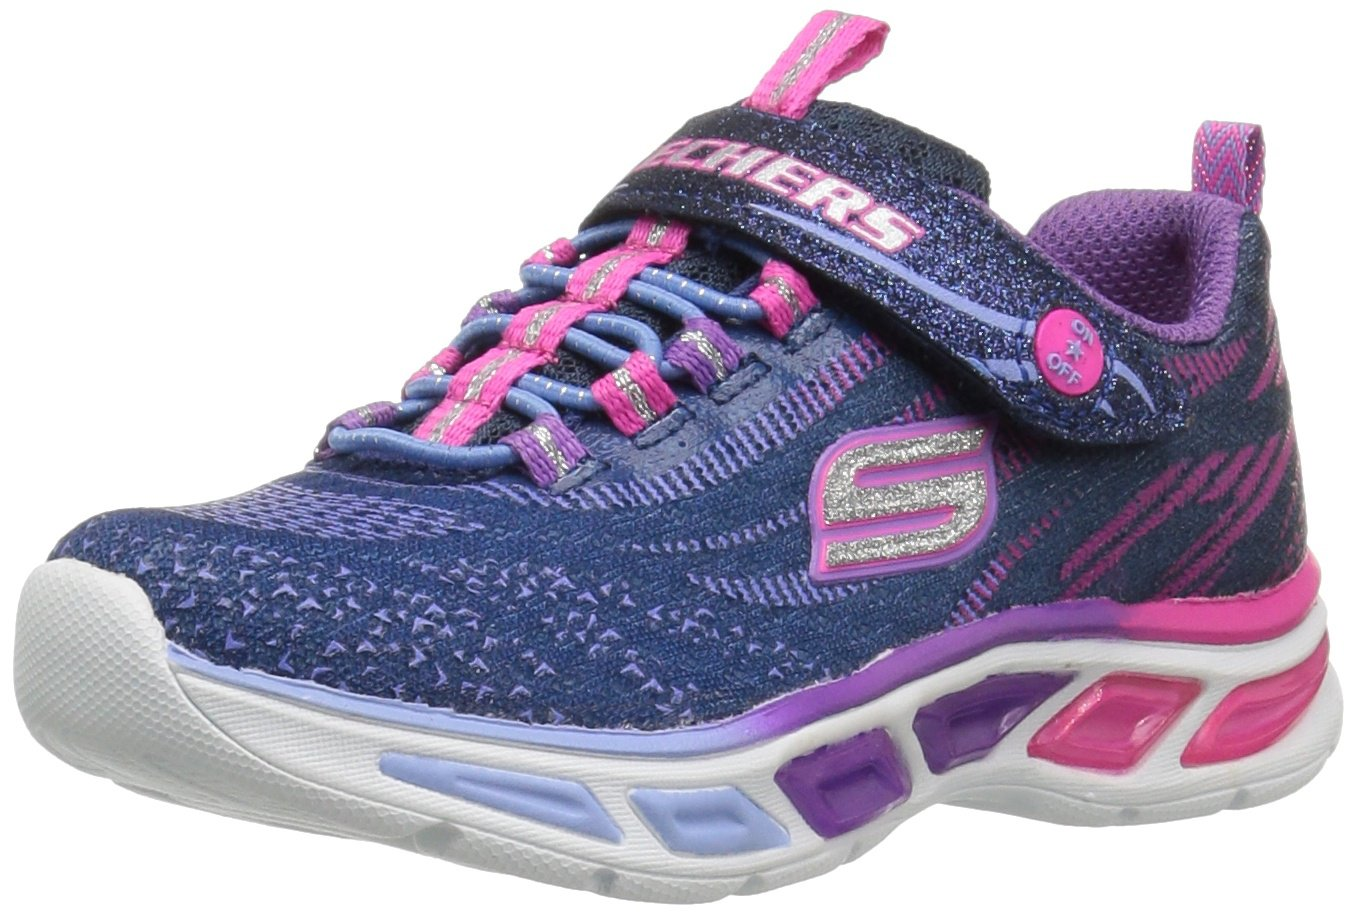 Skechers Girl's, S Lights Litebeams Slip on Sneaker Skechers Girl' s